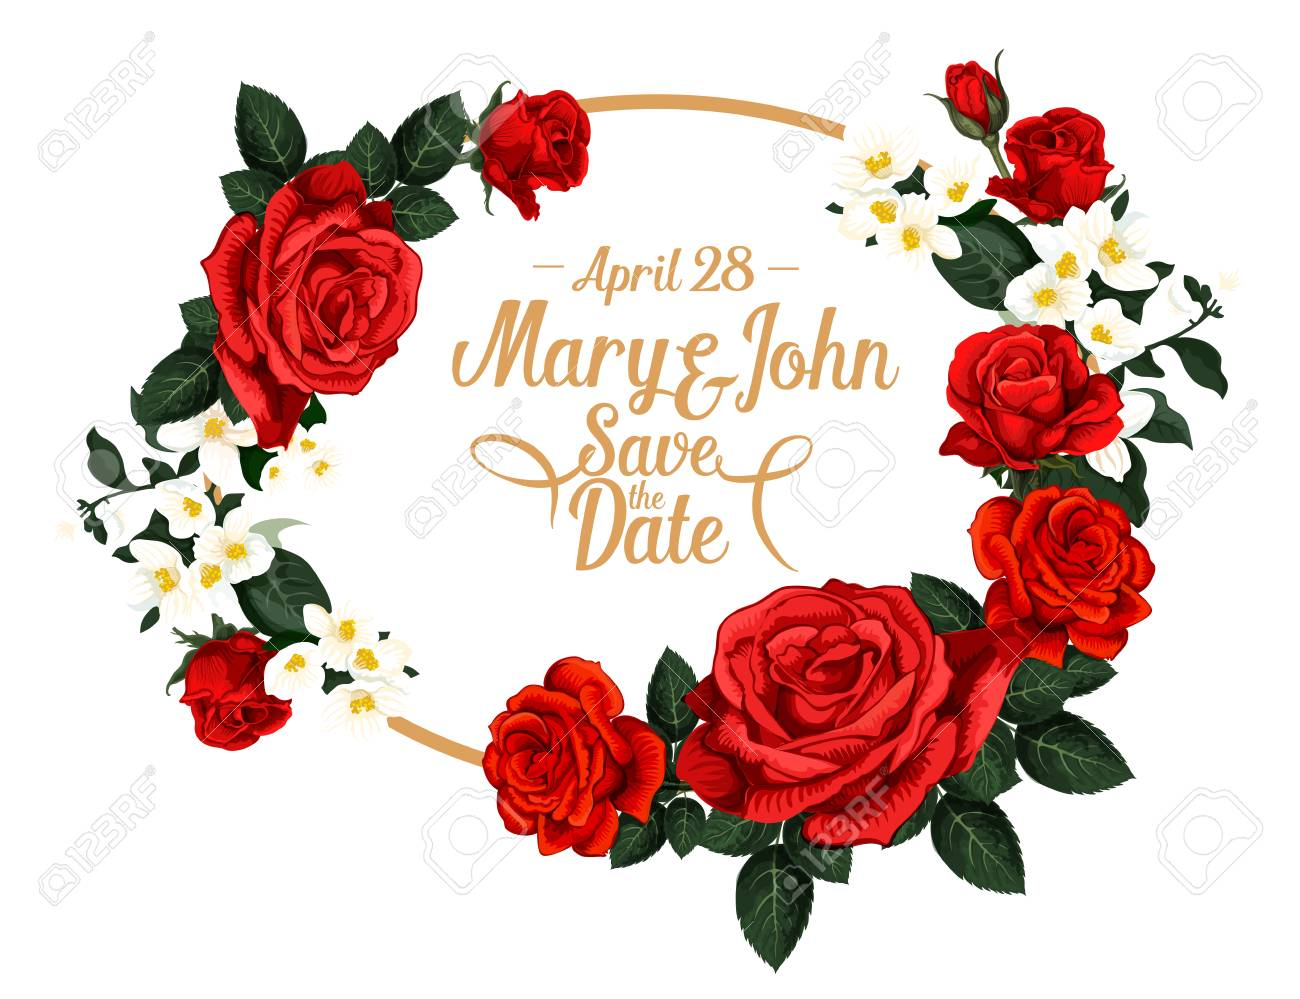 Save The Date Wedding Invitation Card Design Of Red Roses Flowers ...